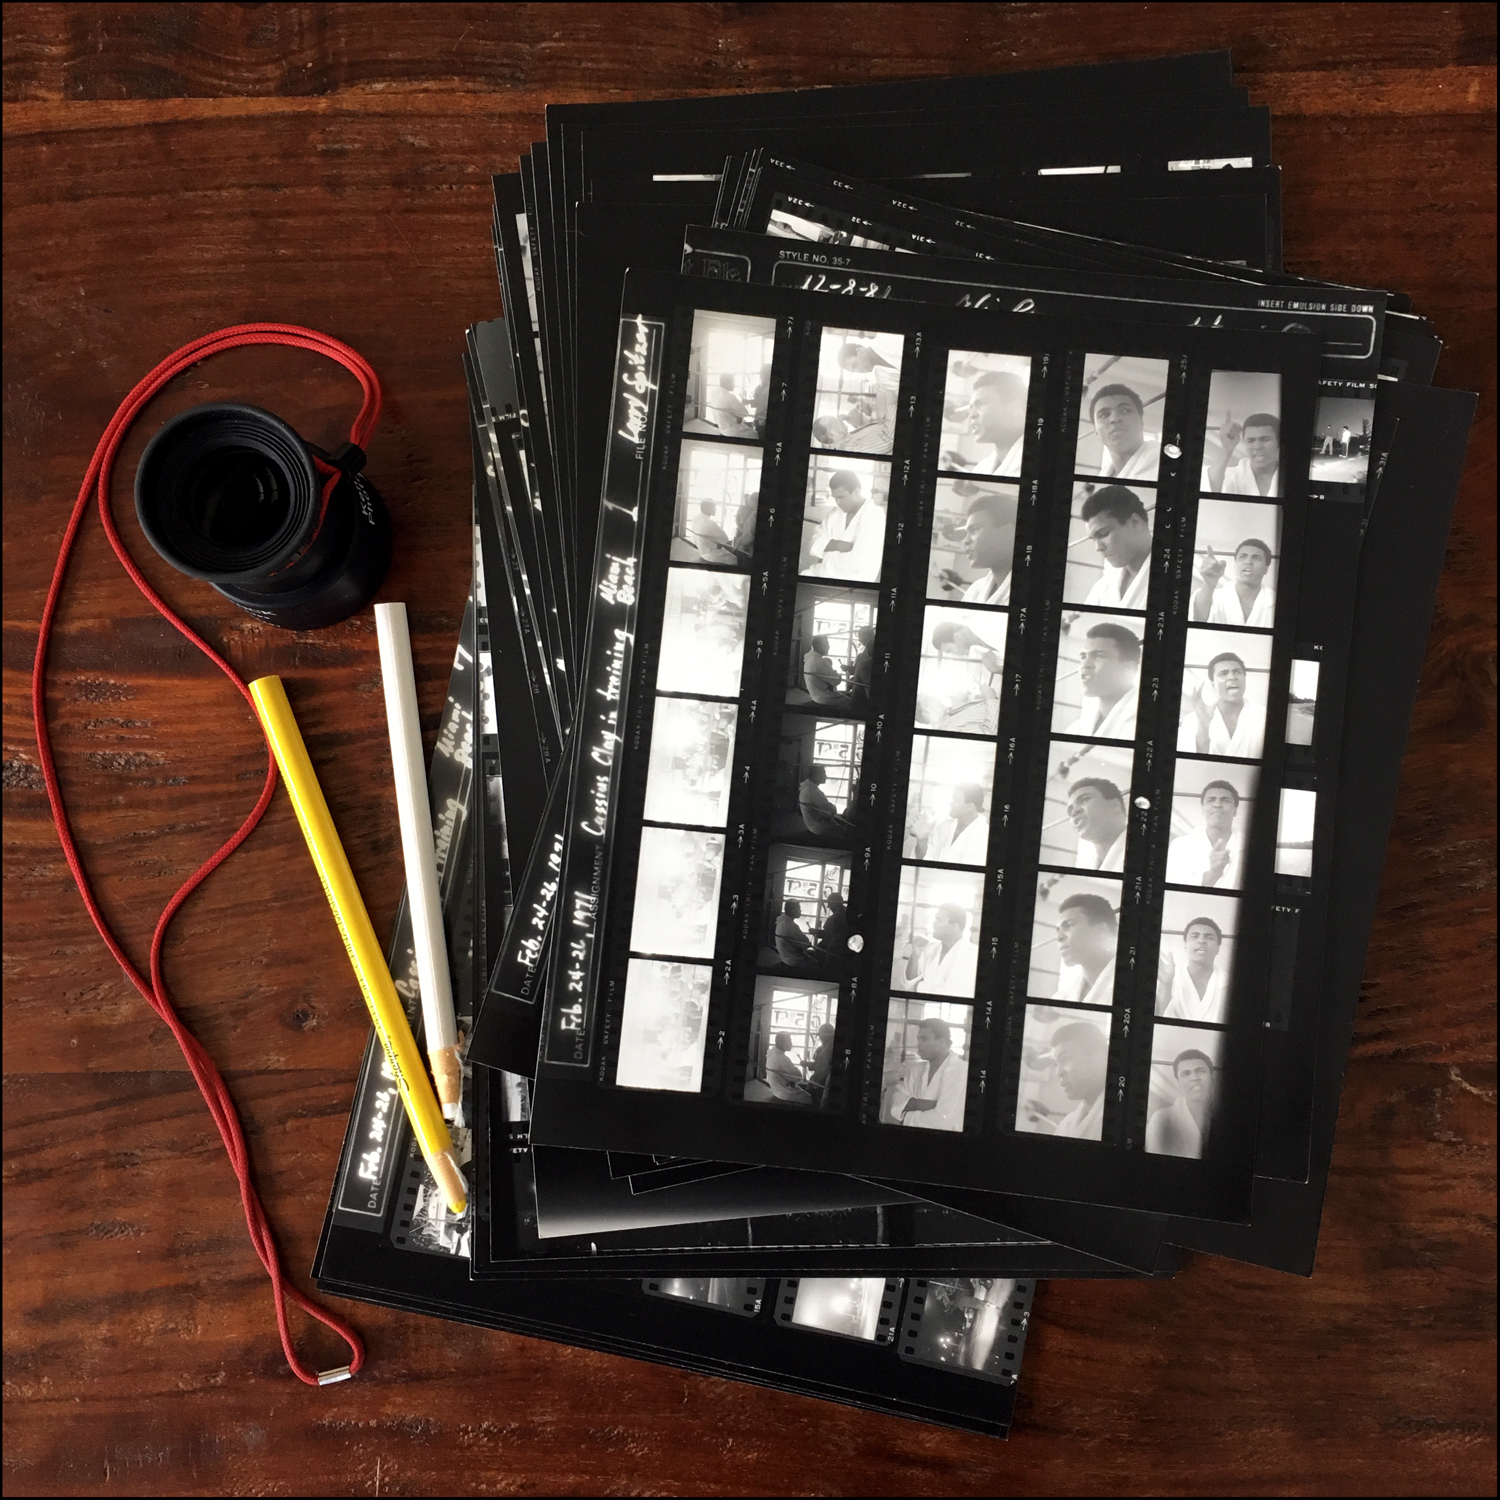 The contact sheets.